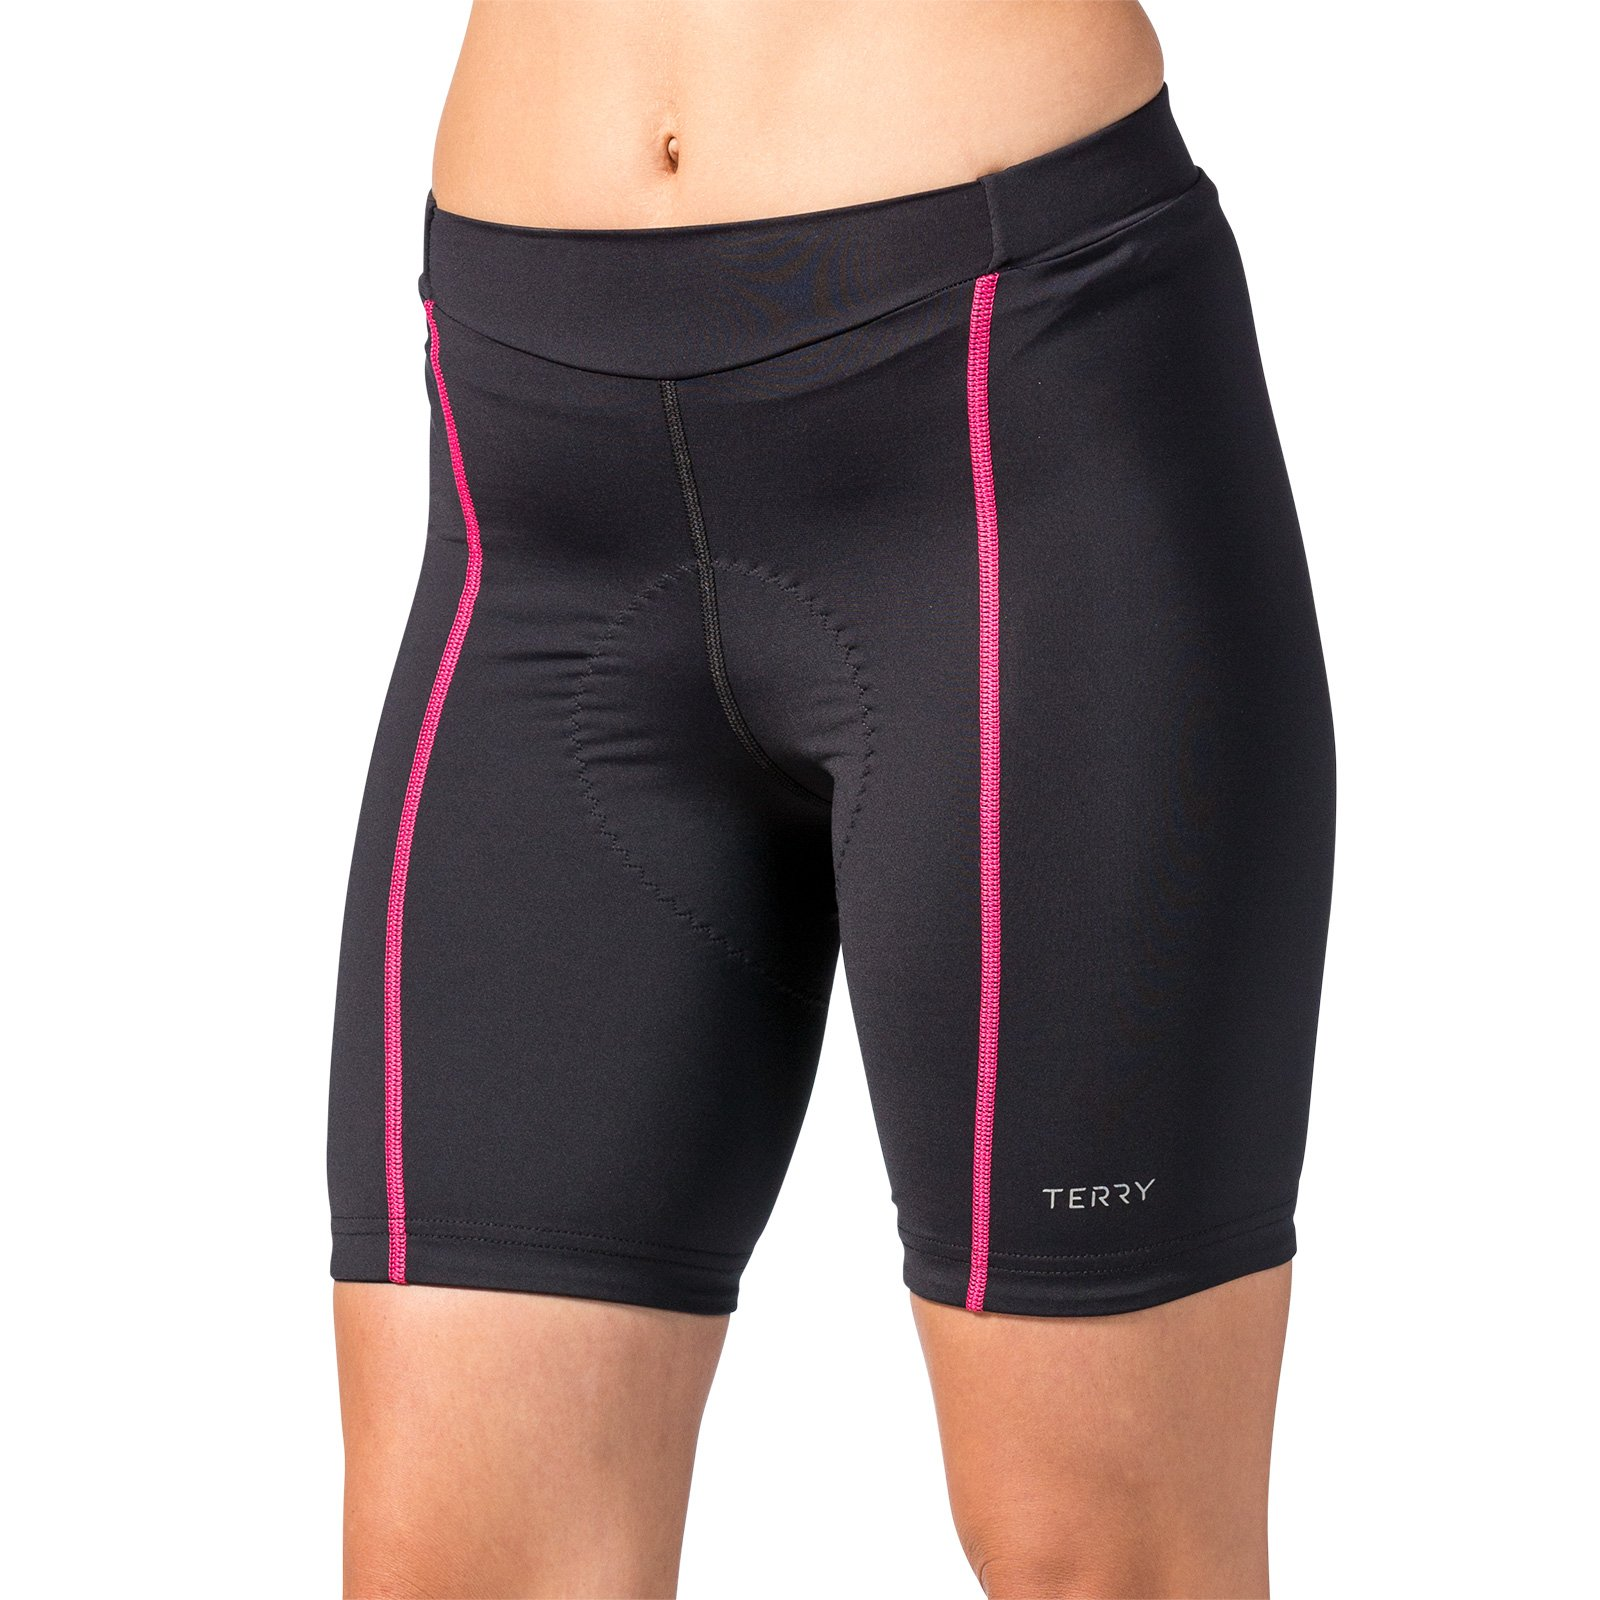 Terry Women's Bella Short - Black/Pink - X Large by Terry (Image #1)